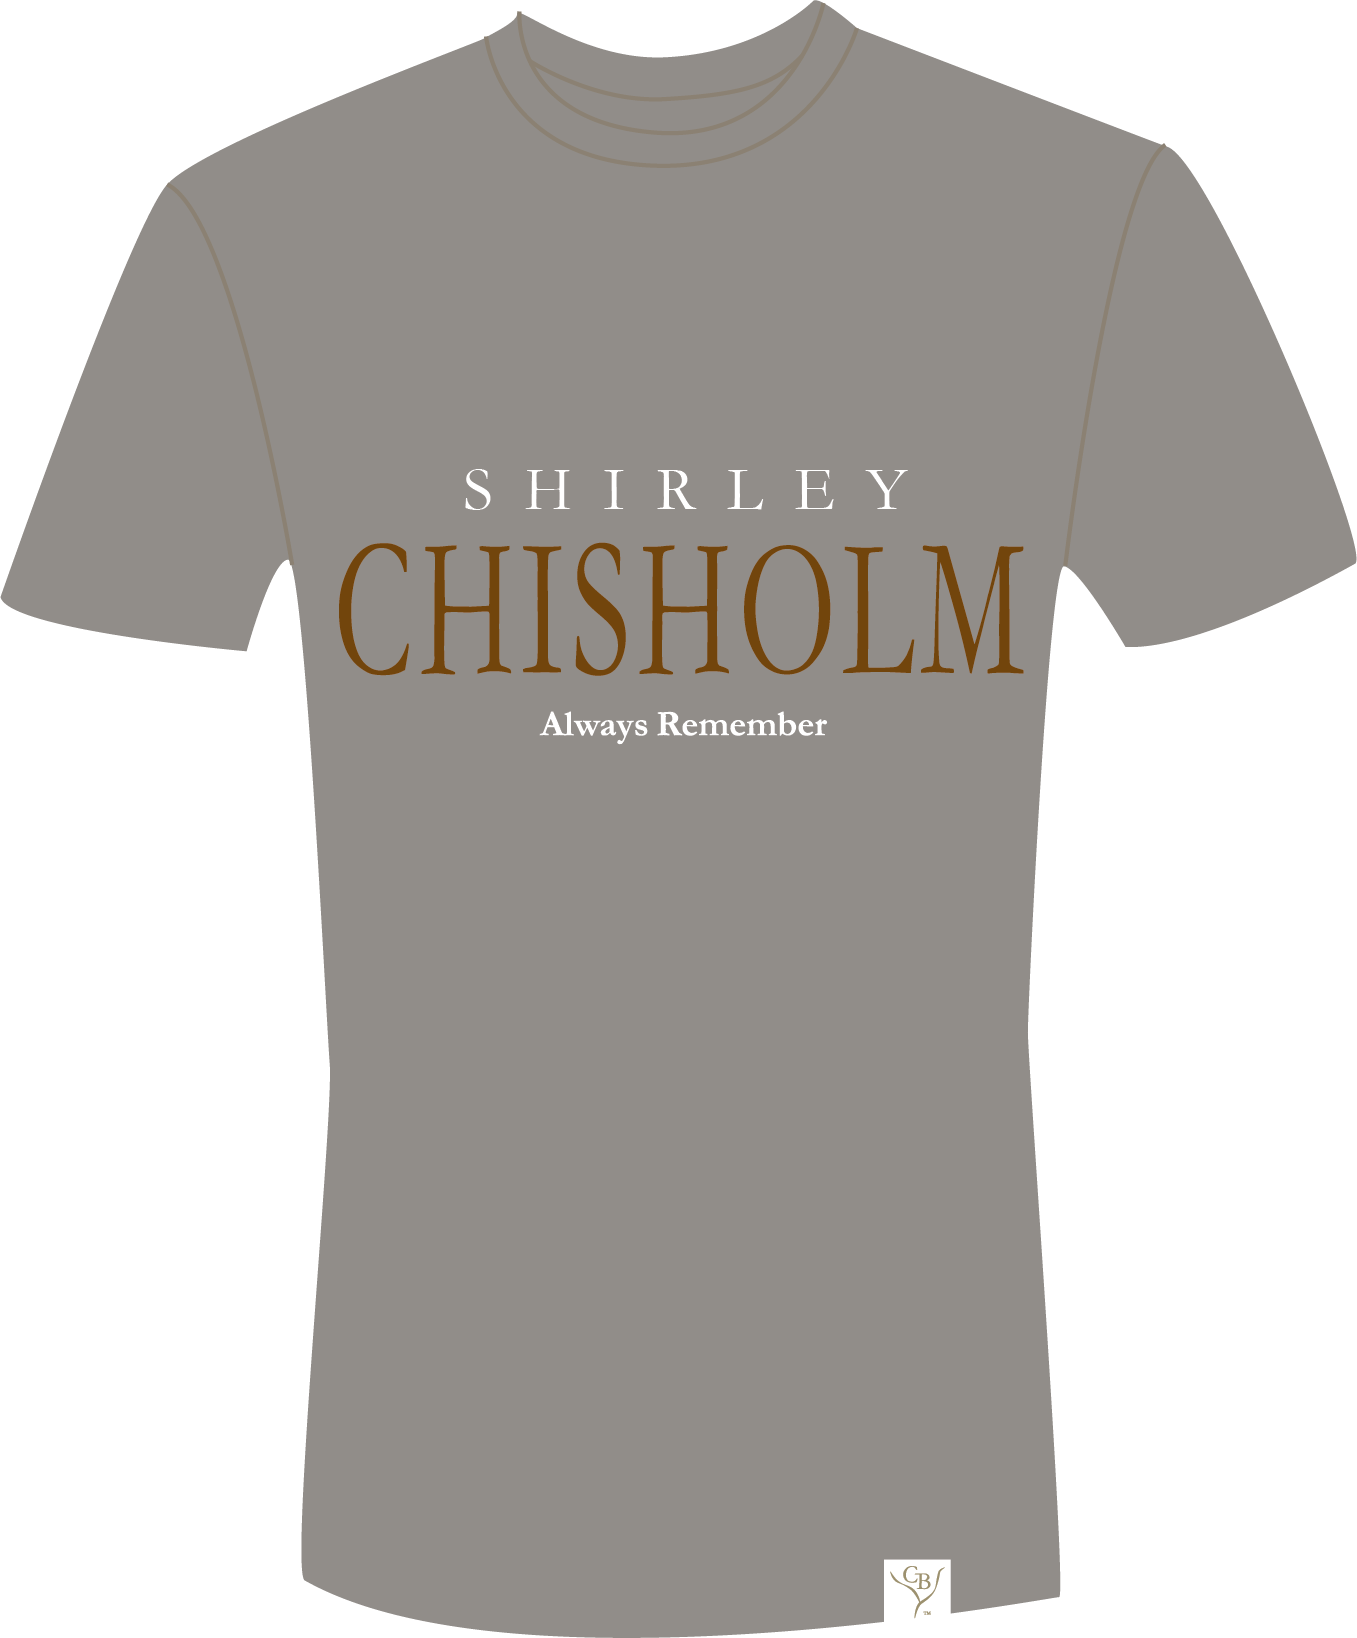 The Chisholm